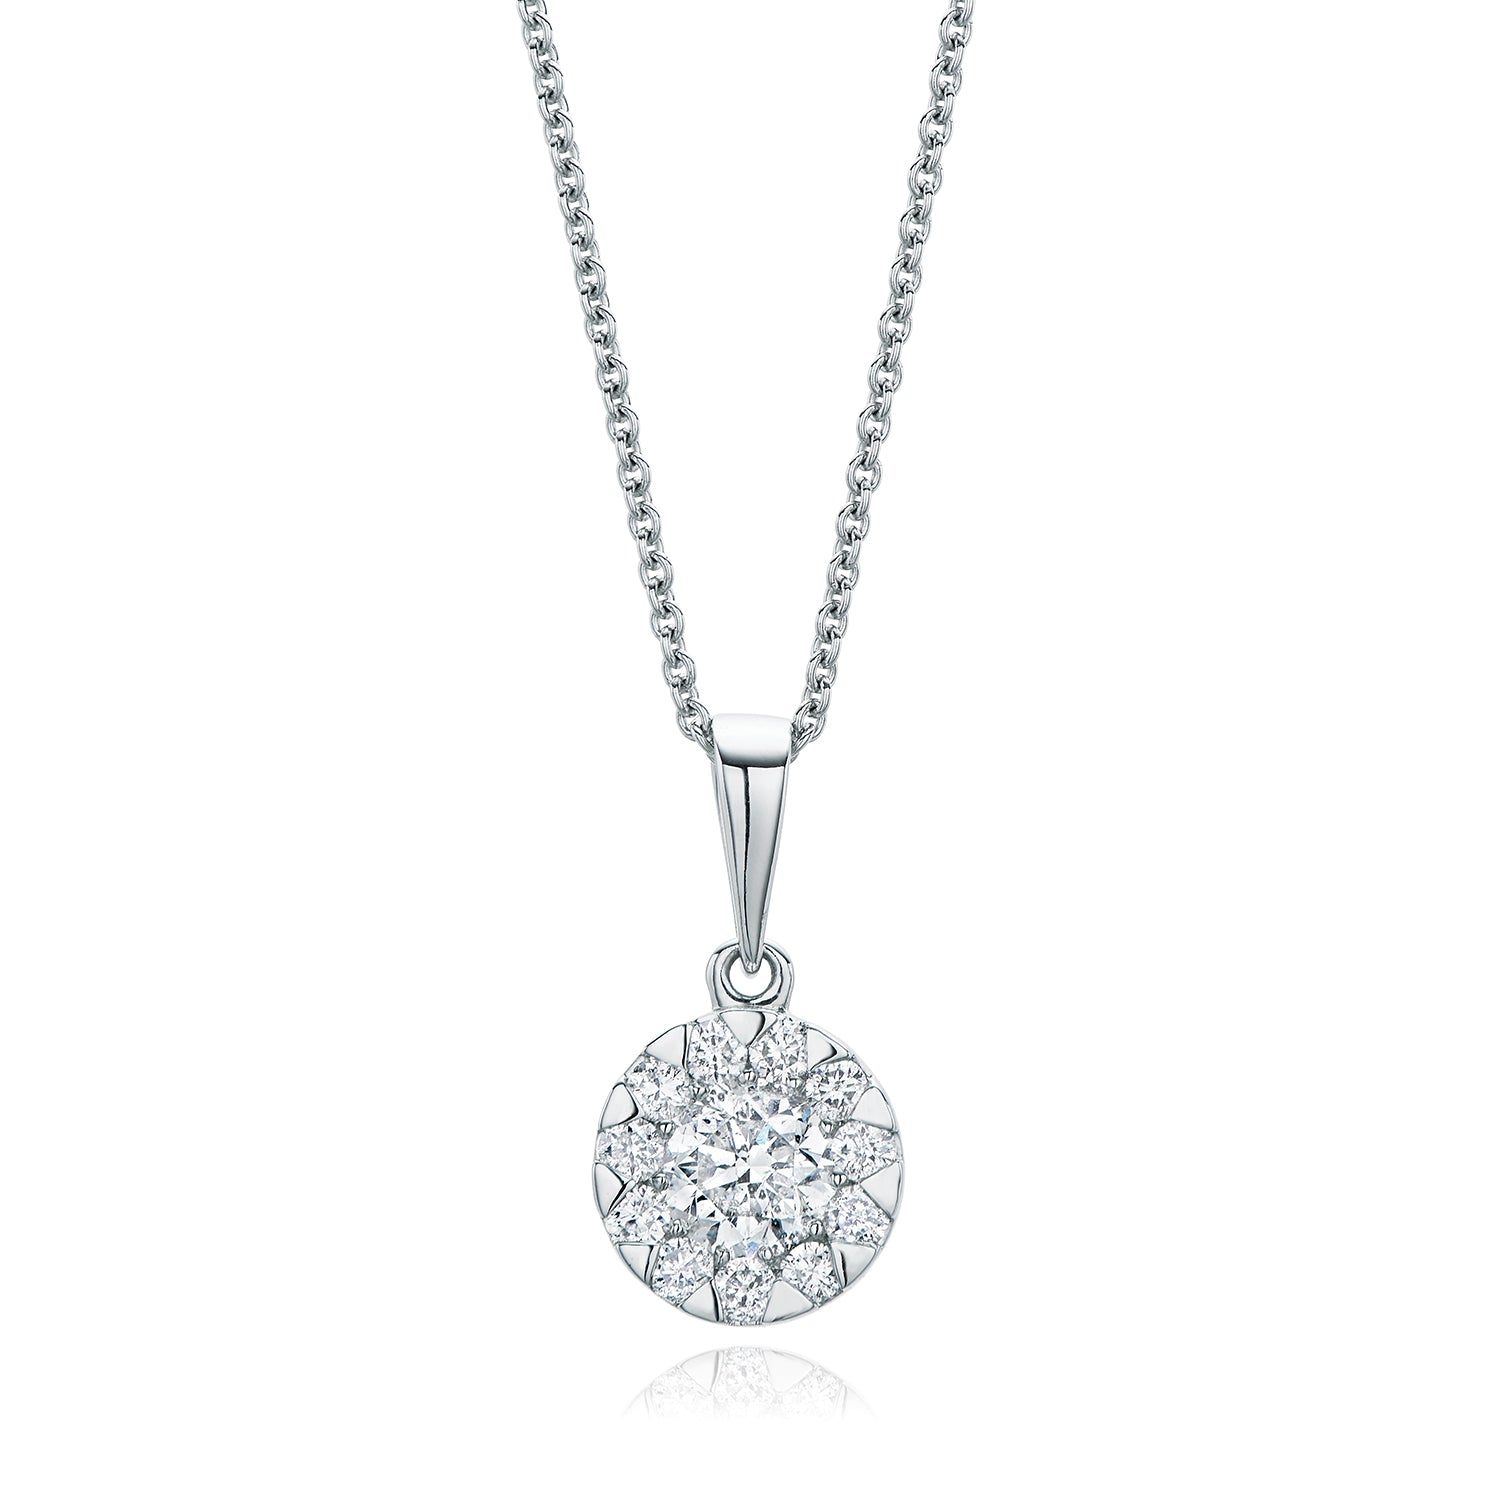 18ct White Gold Round Brilliant Cut with 0.74 CARAT tw of Diamond Pendant